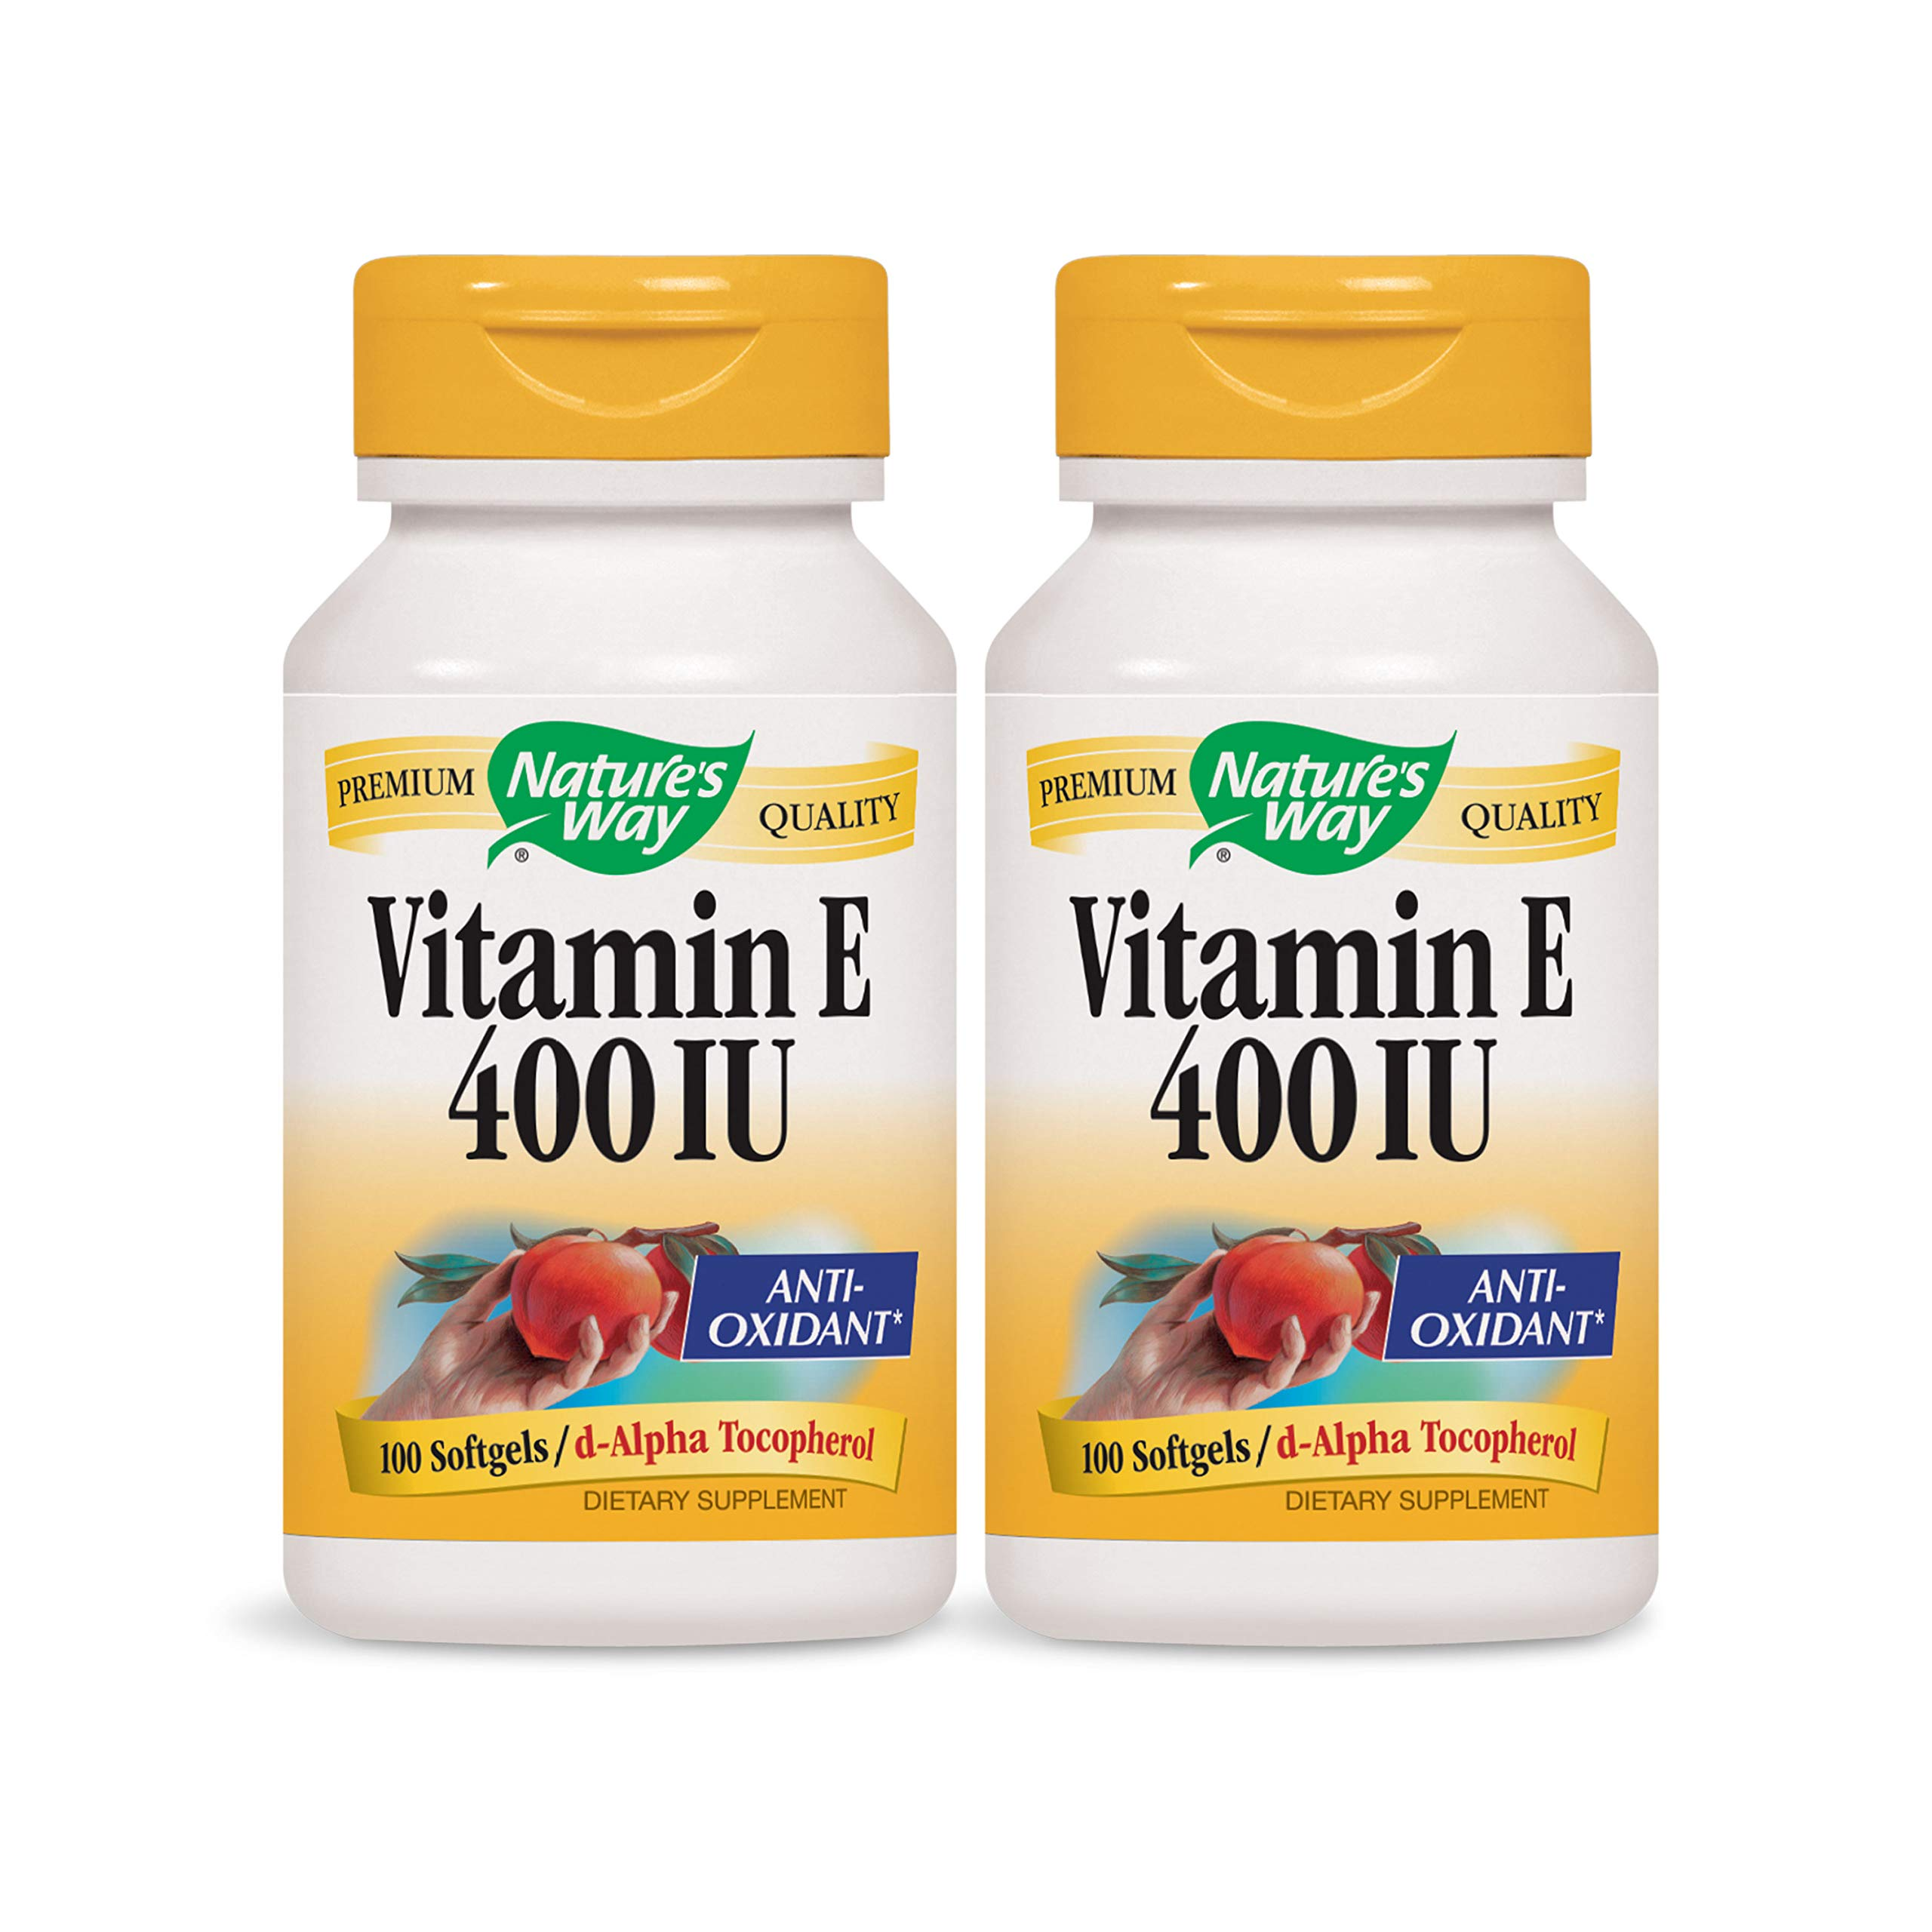 Nature's Way Vitamin E 400 IU, 100 Softgels, Pack of 2 by Nature's Way